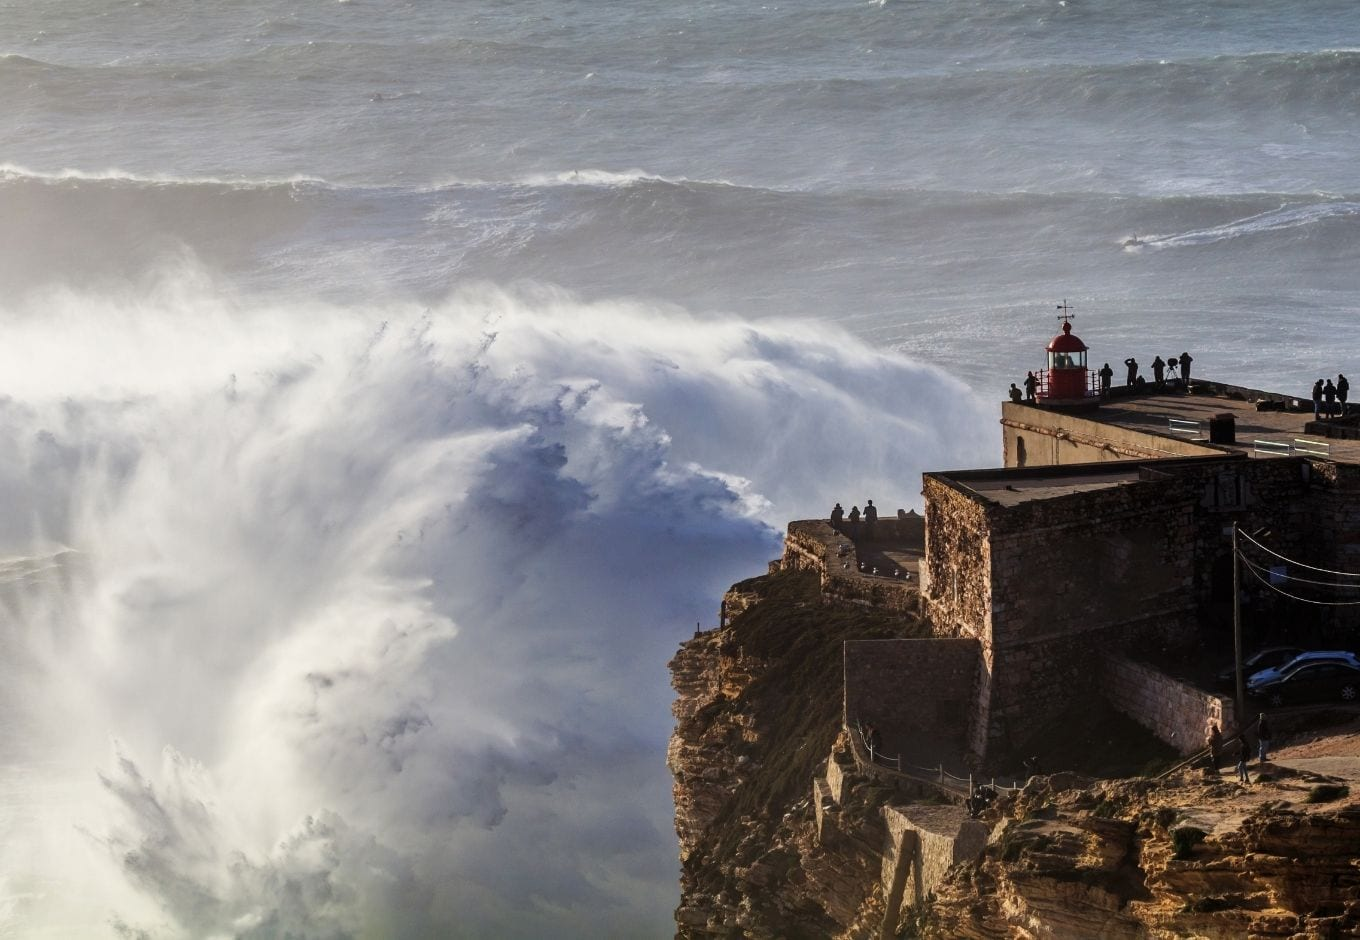 View of a giant Nazaré Wave and the lighthouse at Praia do Norte.